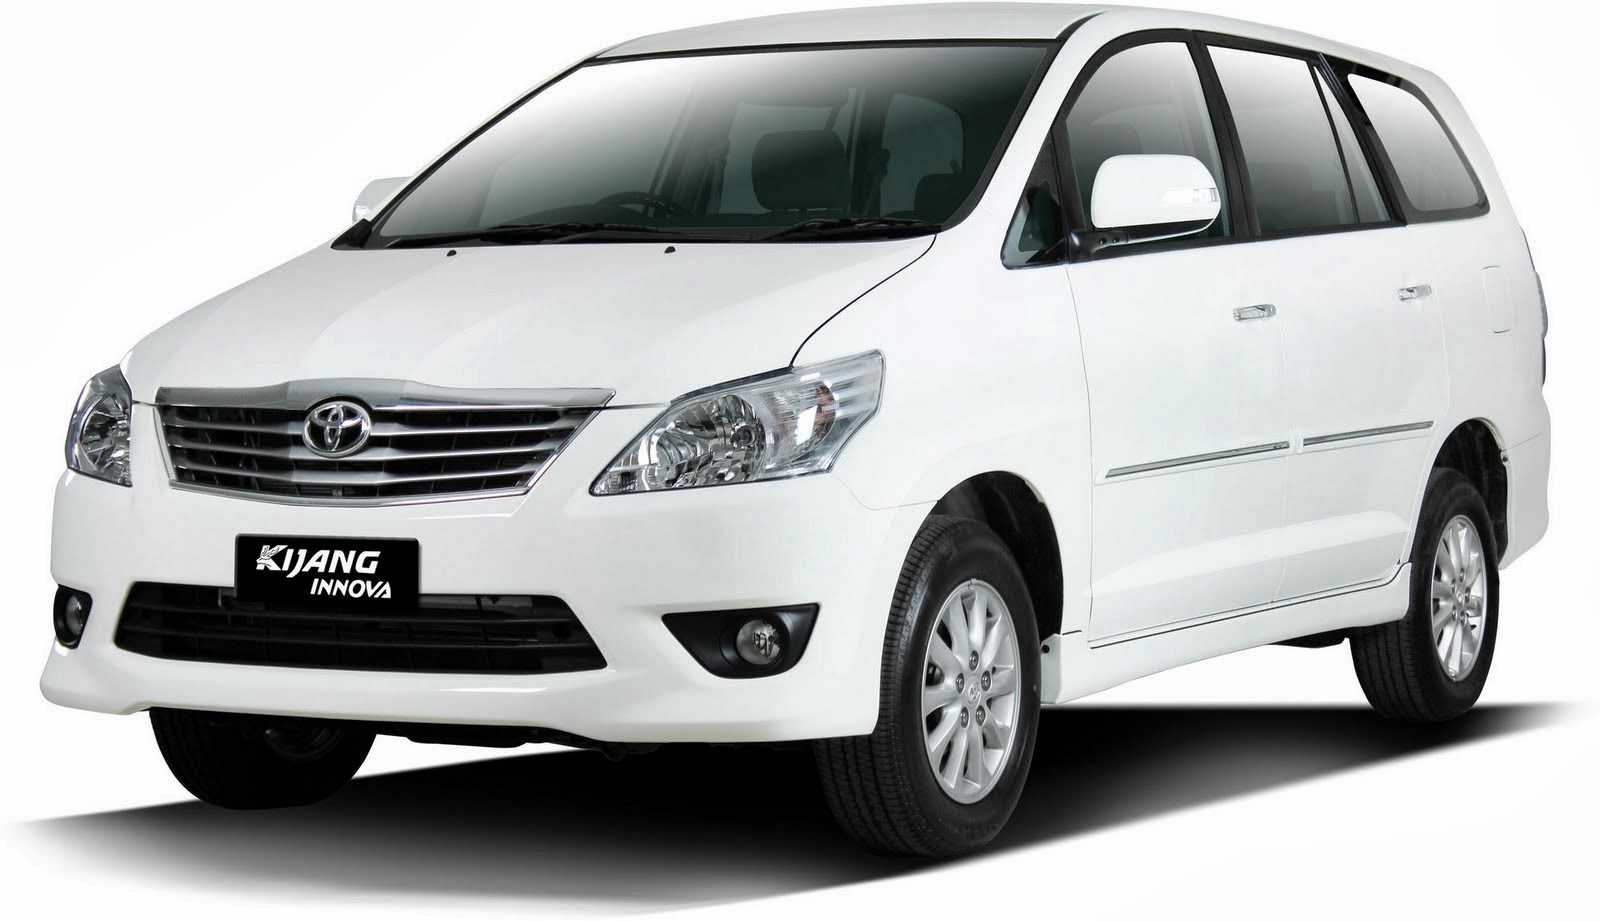 Group All New Kijang Innova Upgrade Grand Avanza Automotif Specifications And Price 2015